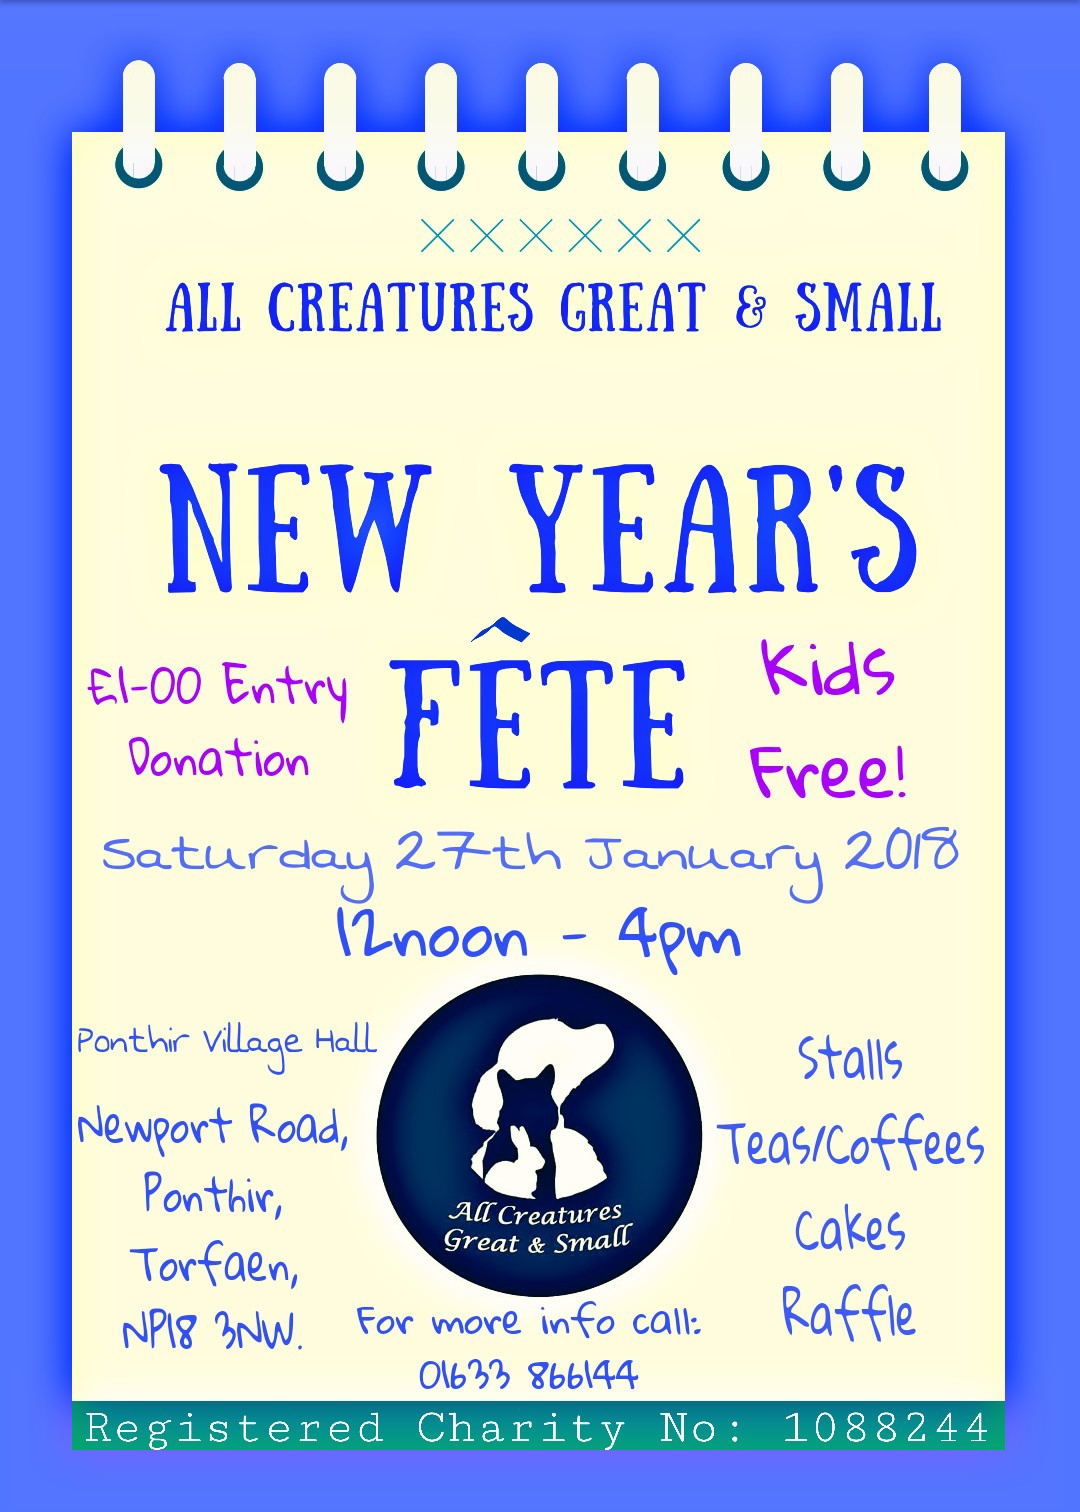 All Creatures Great & Small New Year's Fete